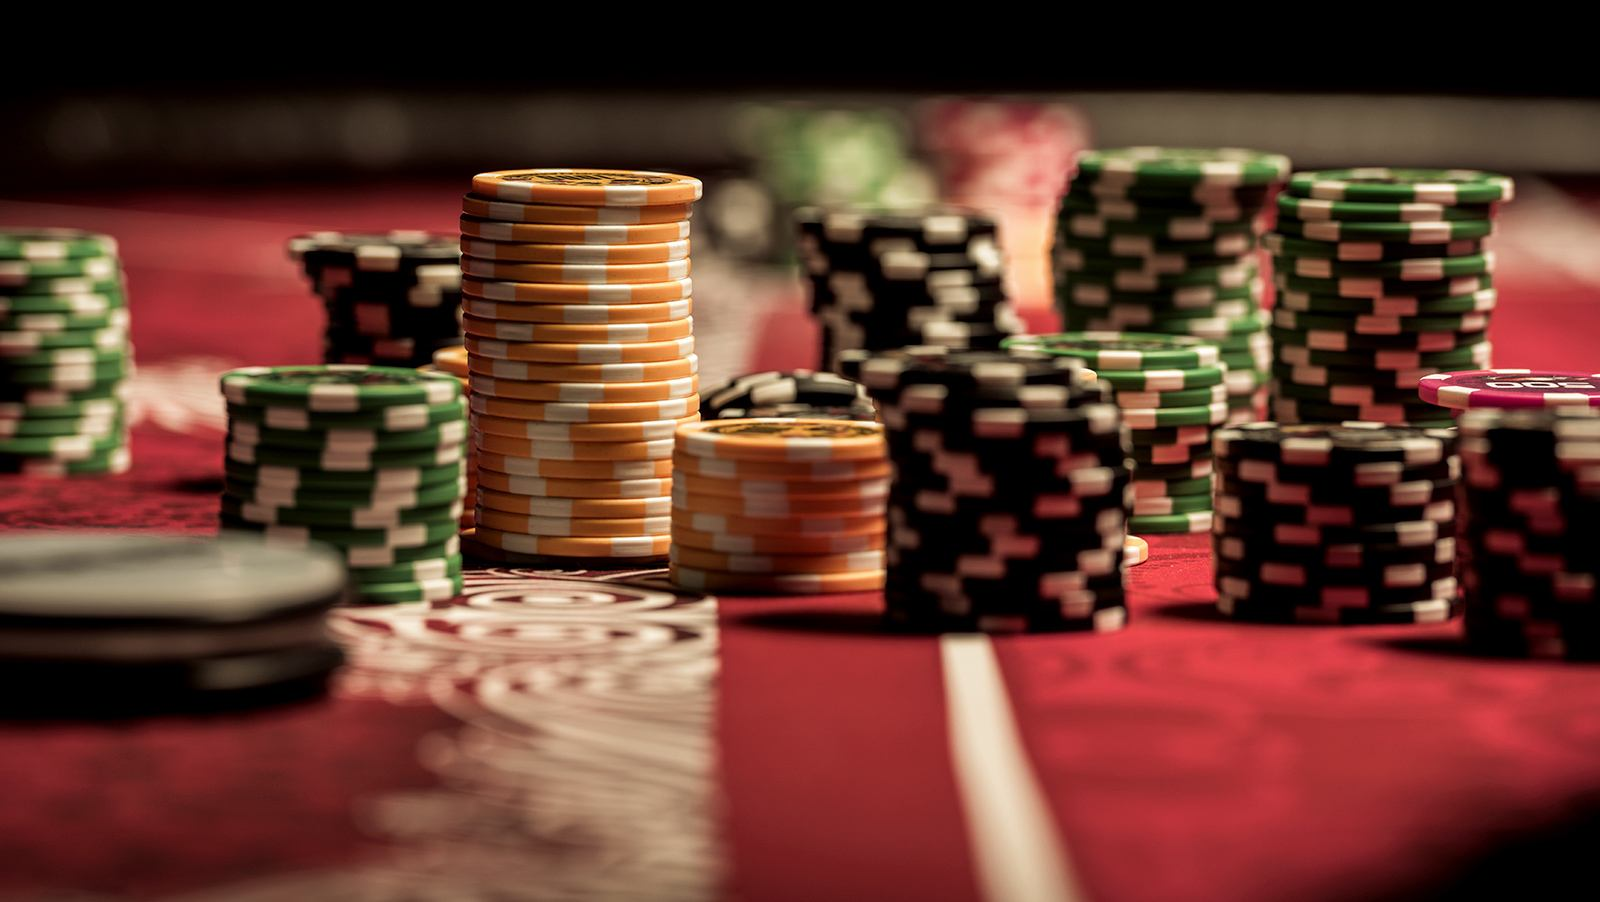 Macau casinos report 1,074 suspicious transactions in H1